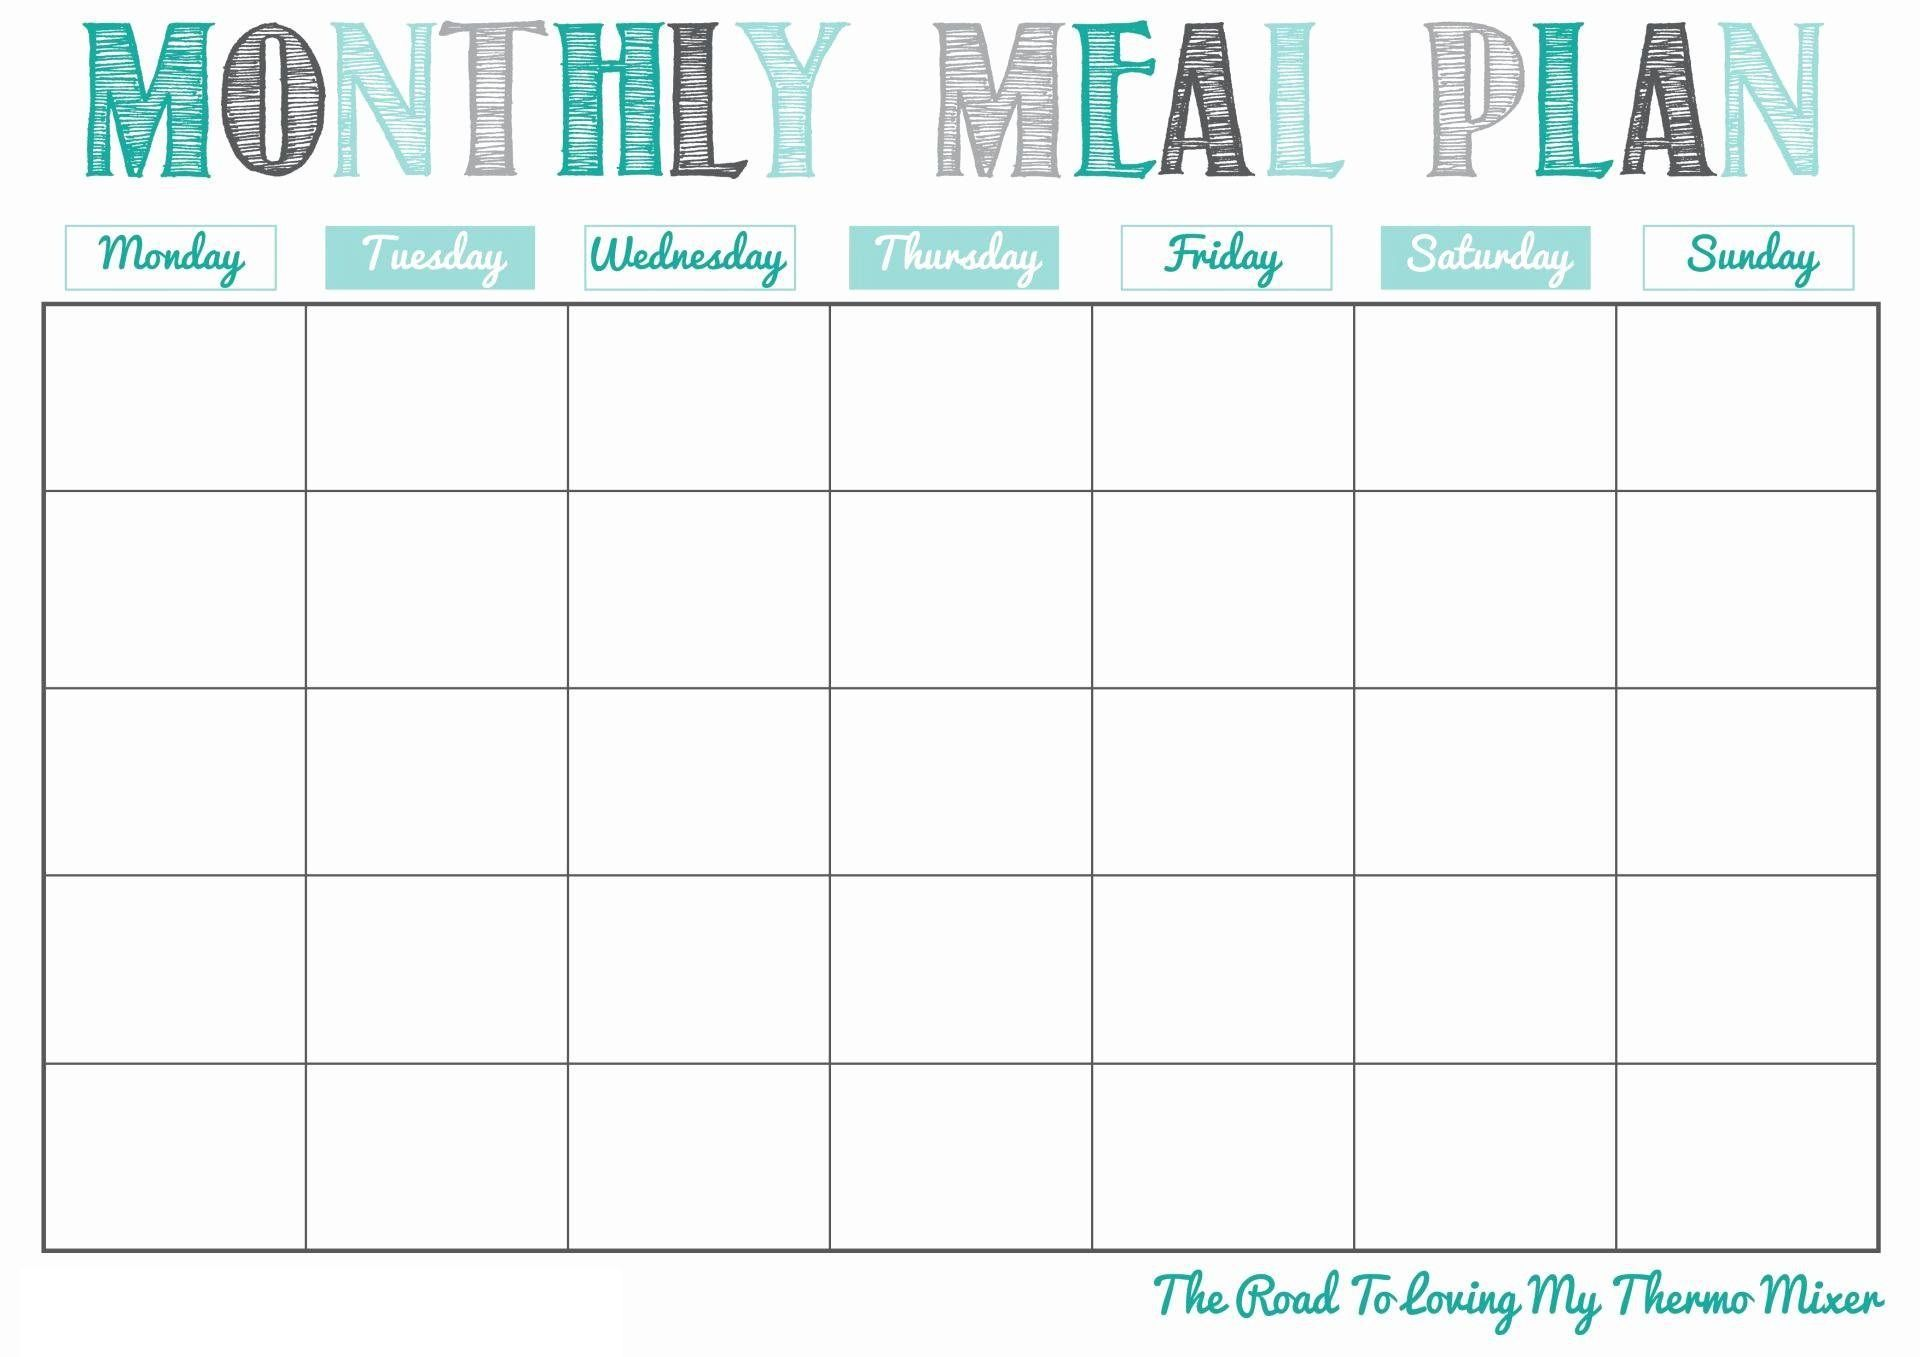 004 Best Meal Plan Calendar Template Highest Quality  Excel Weekly 30 DayFull